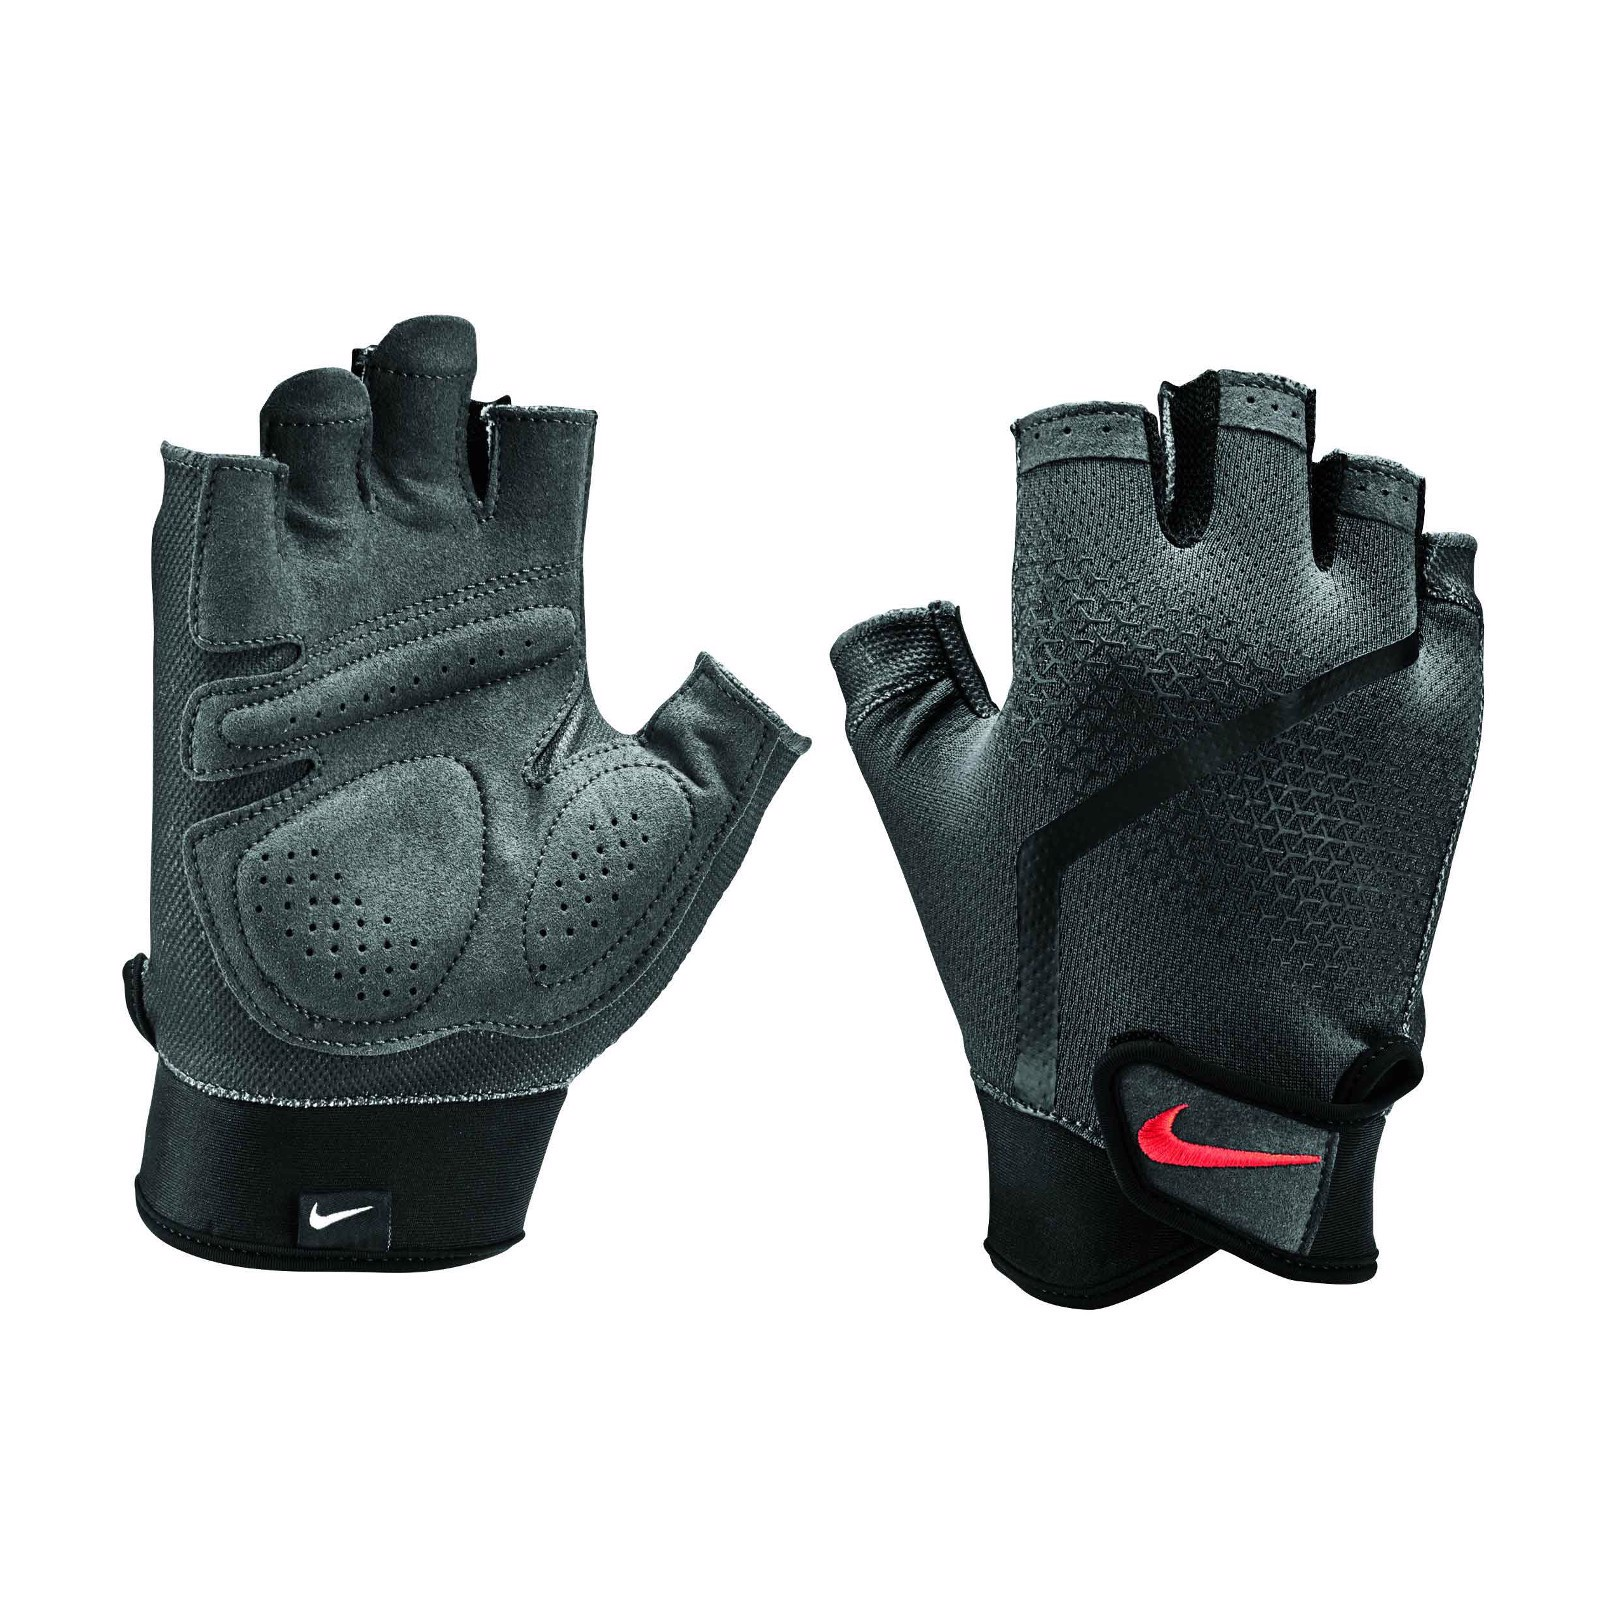 Nike - Găng tay thể thao nam Men'S Extreme Fitness Gloves EQ21-N.37